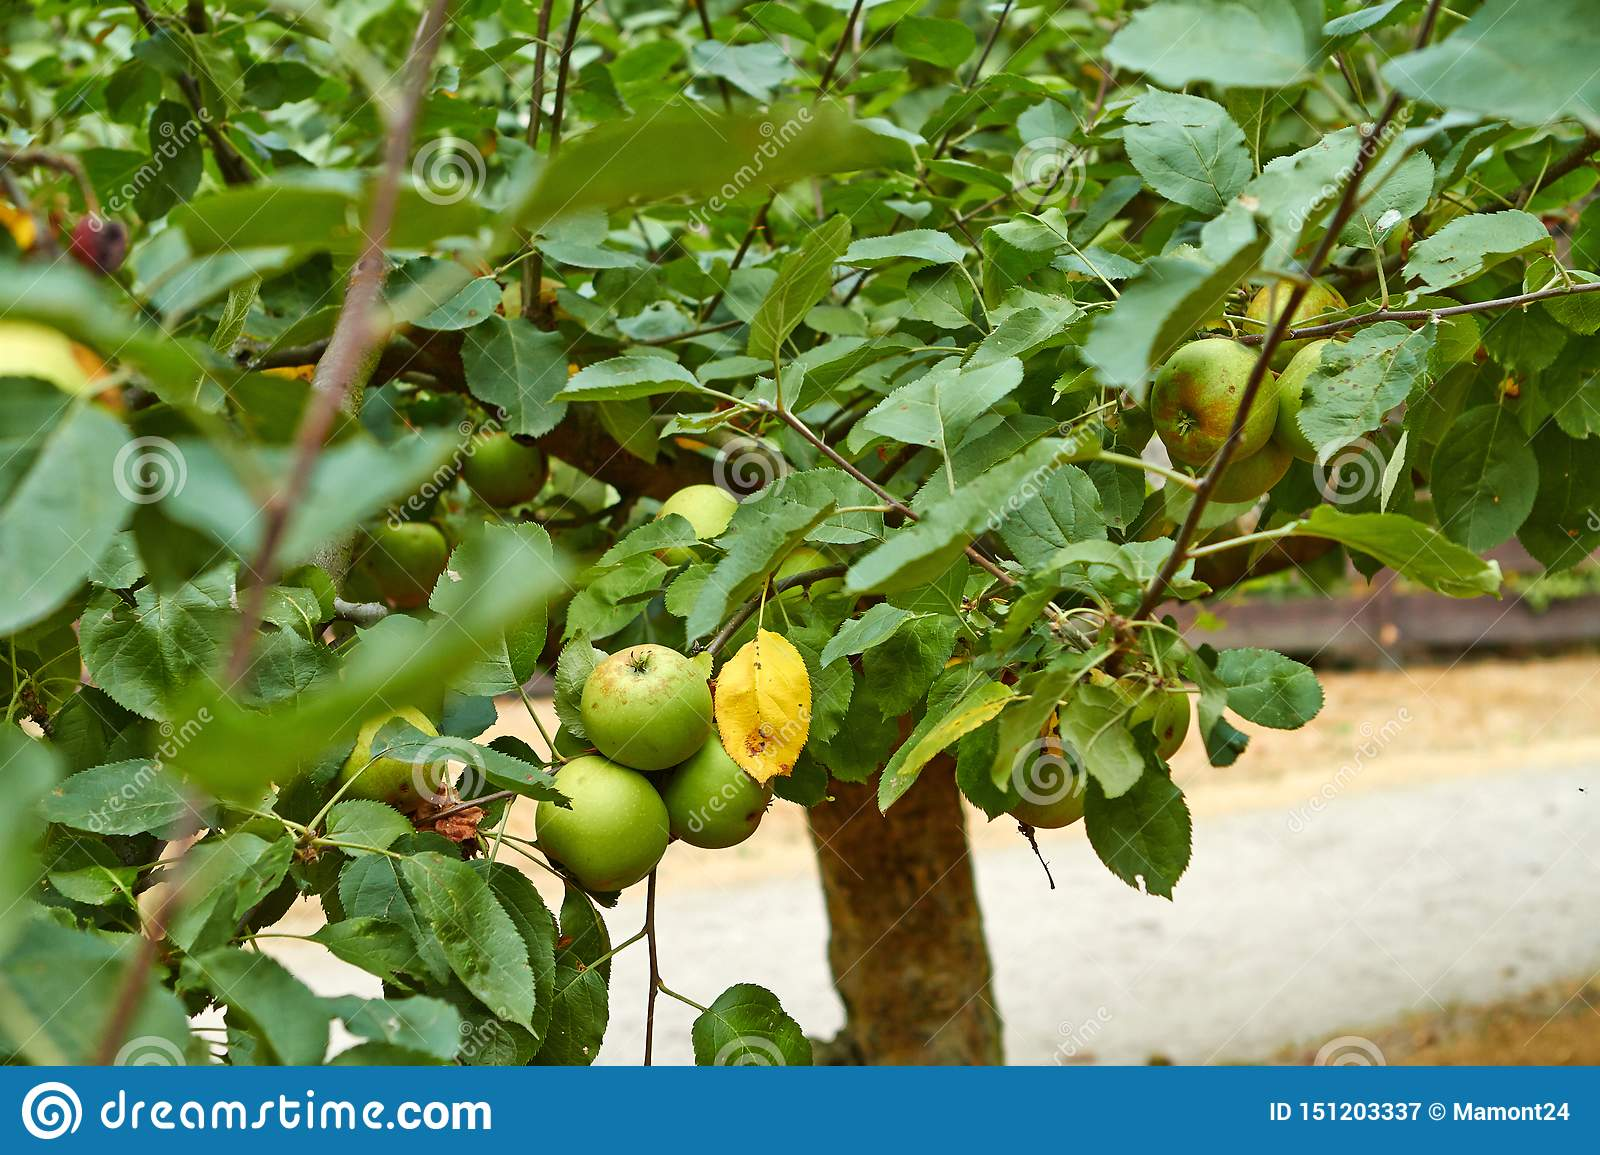 Green apples on the apple tree branch. Netherlands July